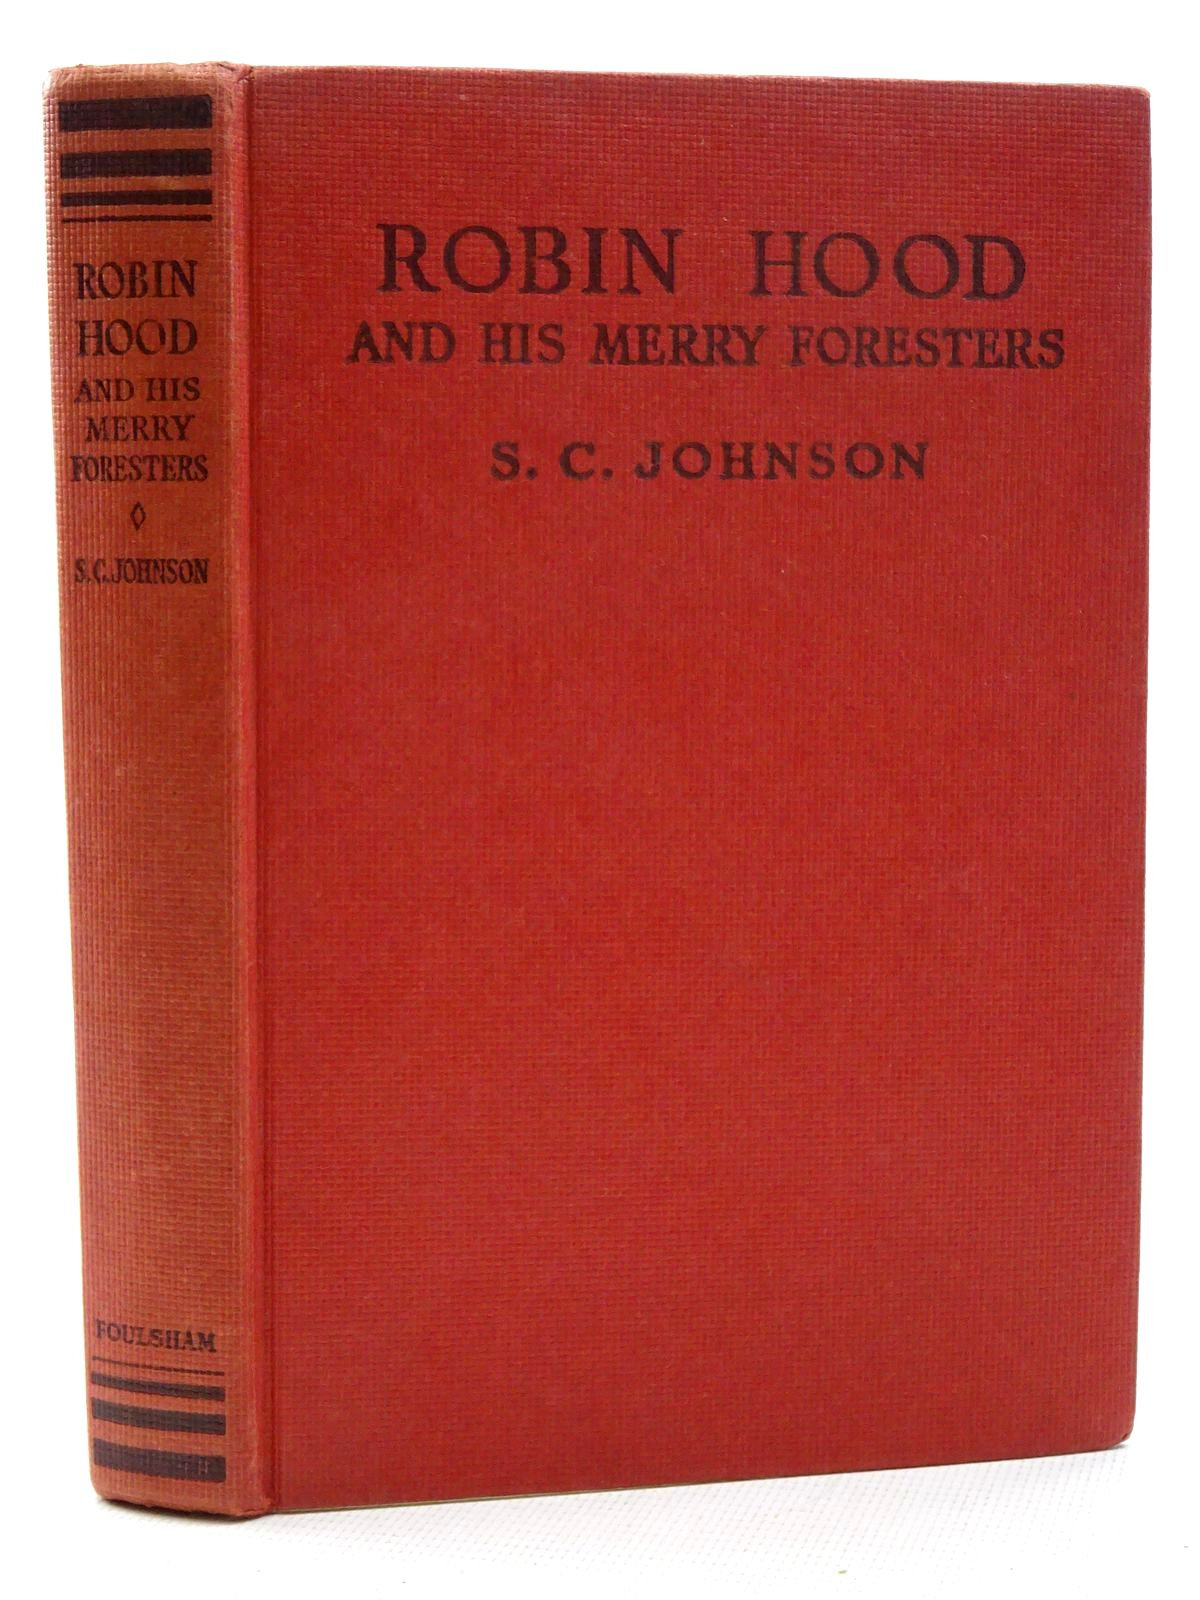 Photo of ROBIN HOOD AND HIS MERRY FORESTERS written by Johnson, S.C. illustrated by Atherley, L. Thomas M'Connell, James E. published by W. Foulsham (STOCK CODE: 2125191)  for sale by Stella & Rose's Books